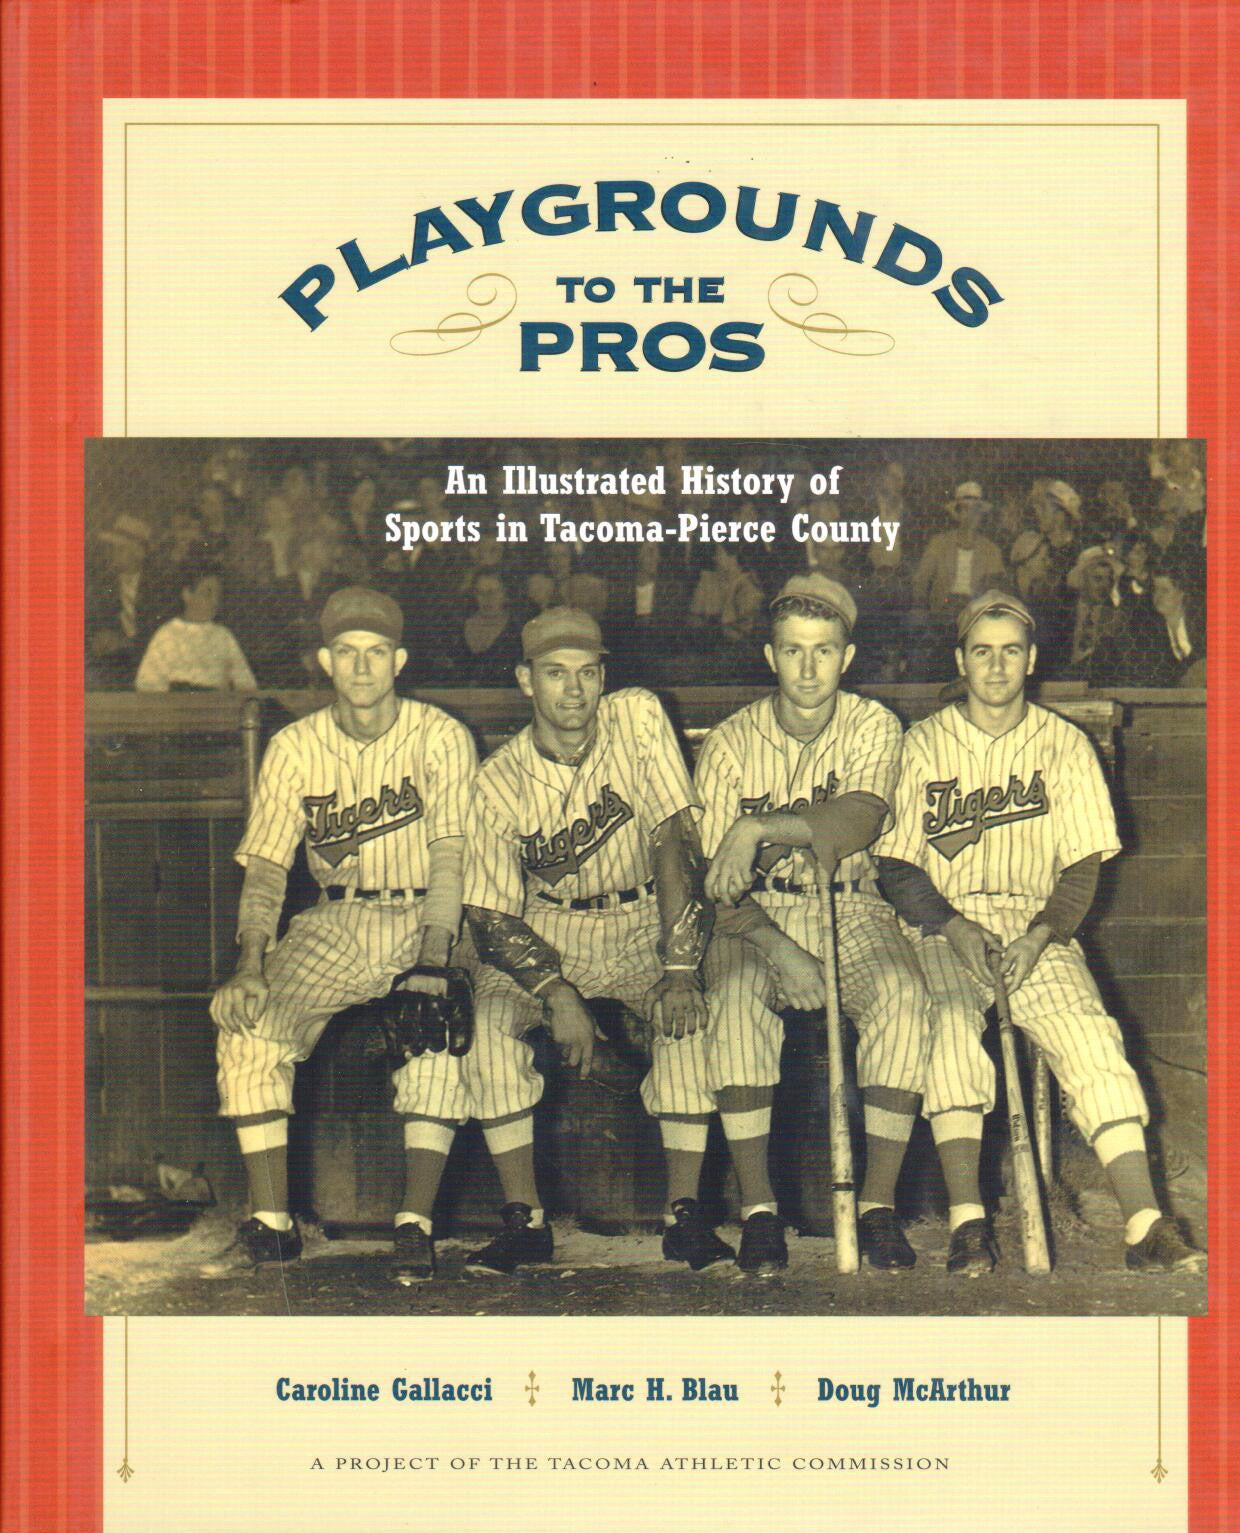 Playground to the Pros; An Illustrated History of Sports in Tacoma-Pierce County by Caroline Gallacci, Marc H. Blau, and Doug McArthur - Washington State Historical Society